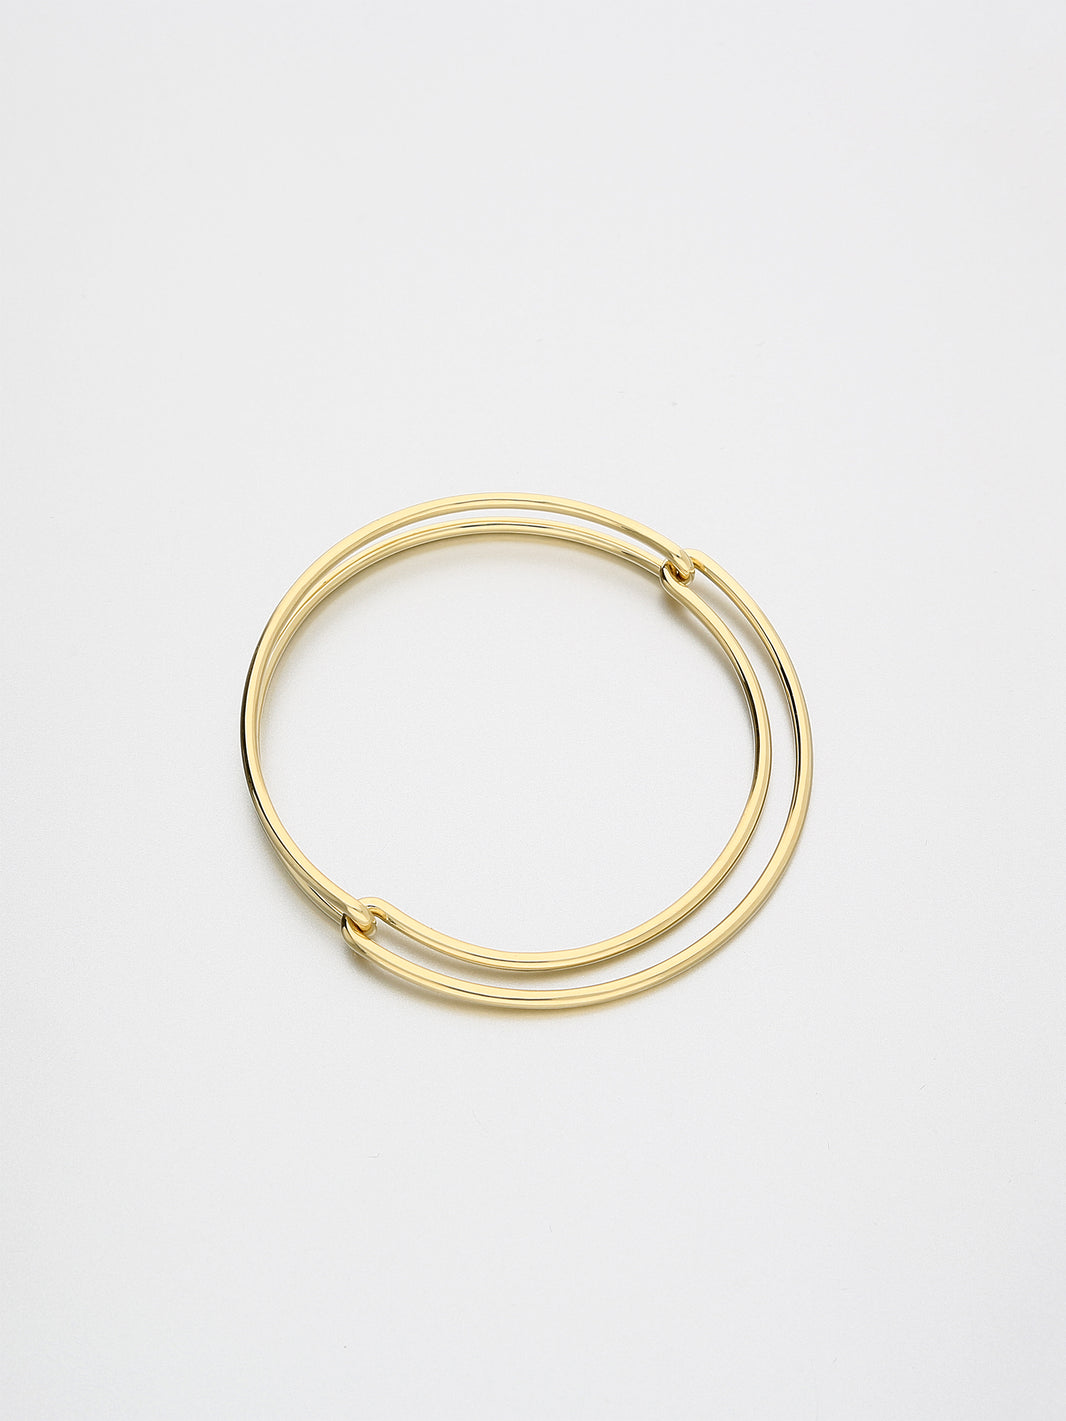 Segment Bangle, Yellow gold